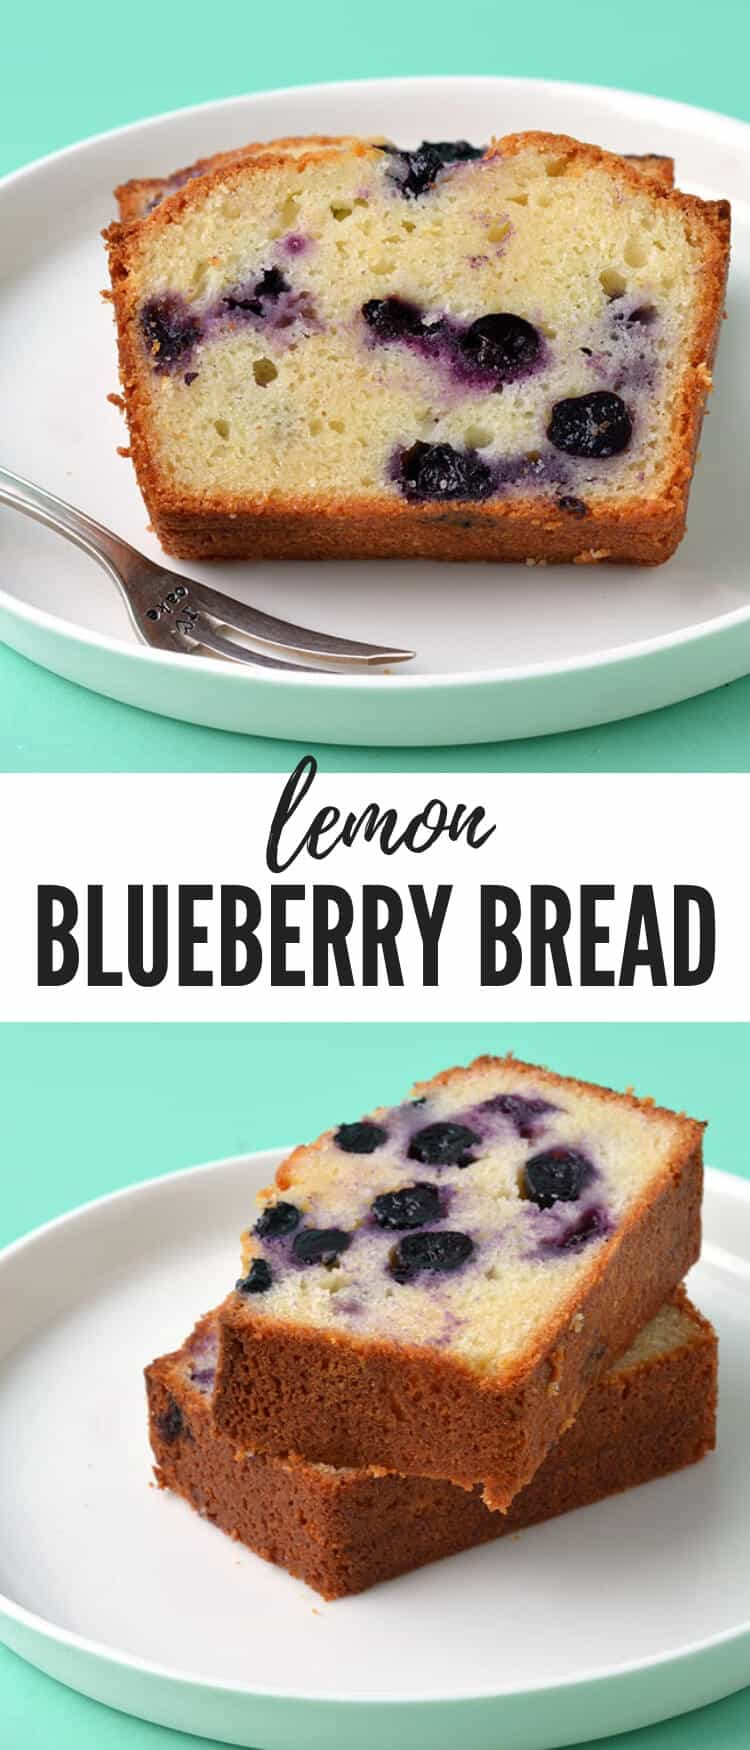 Homemade Blueberry Bread perfect for breakfast or morning tea. This moist olive oil loaf cake is packed with fresh blueberries and a squeeze of lemon. Find the easy recipe on sweetestmenu.com #blueberry #bread #lemon #oliveoilcake